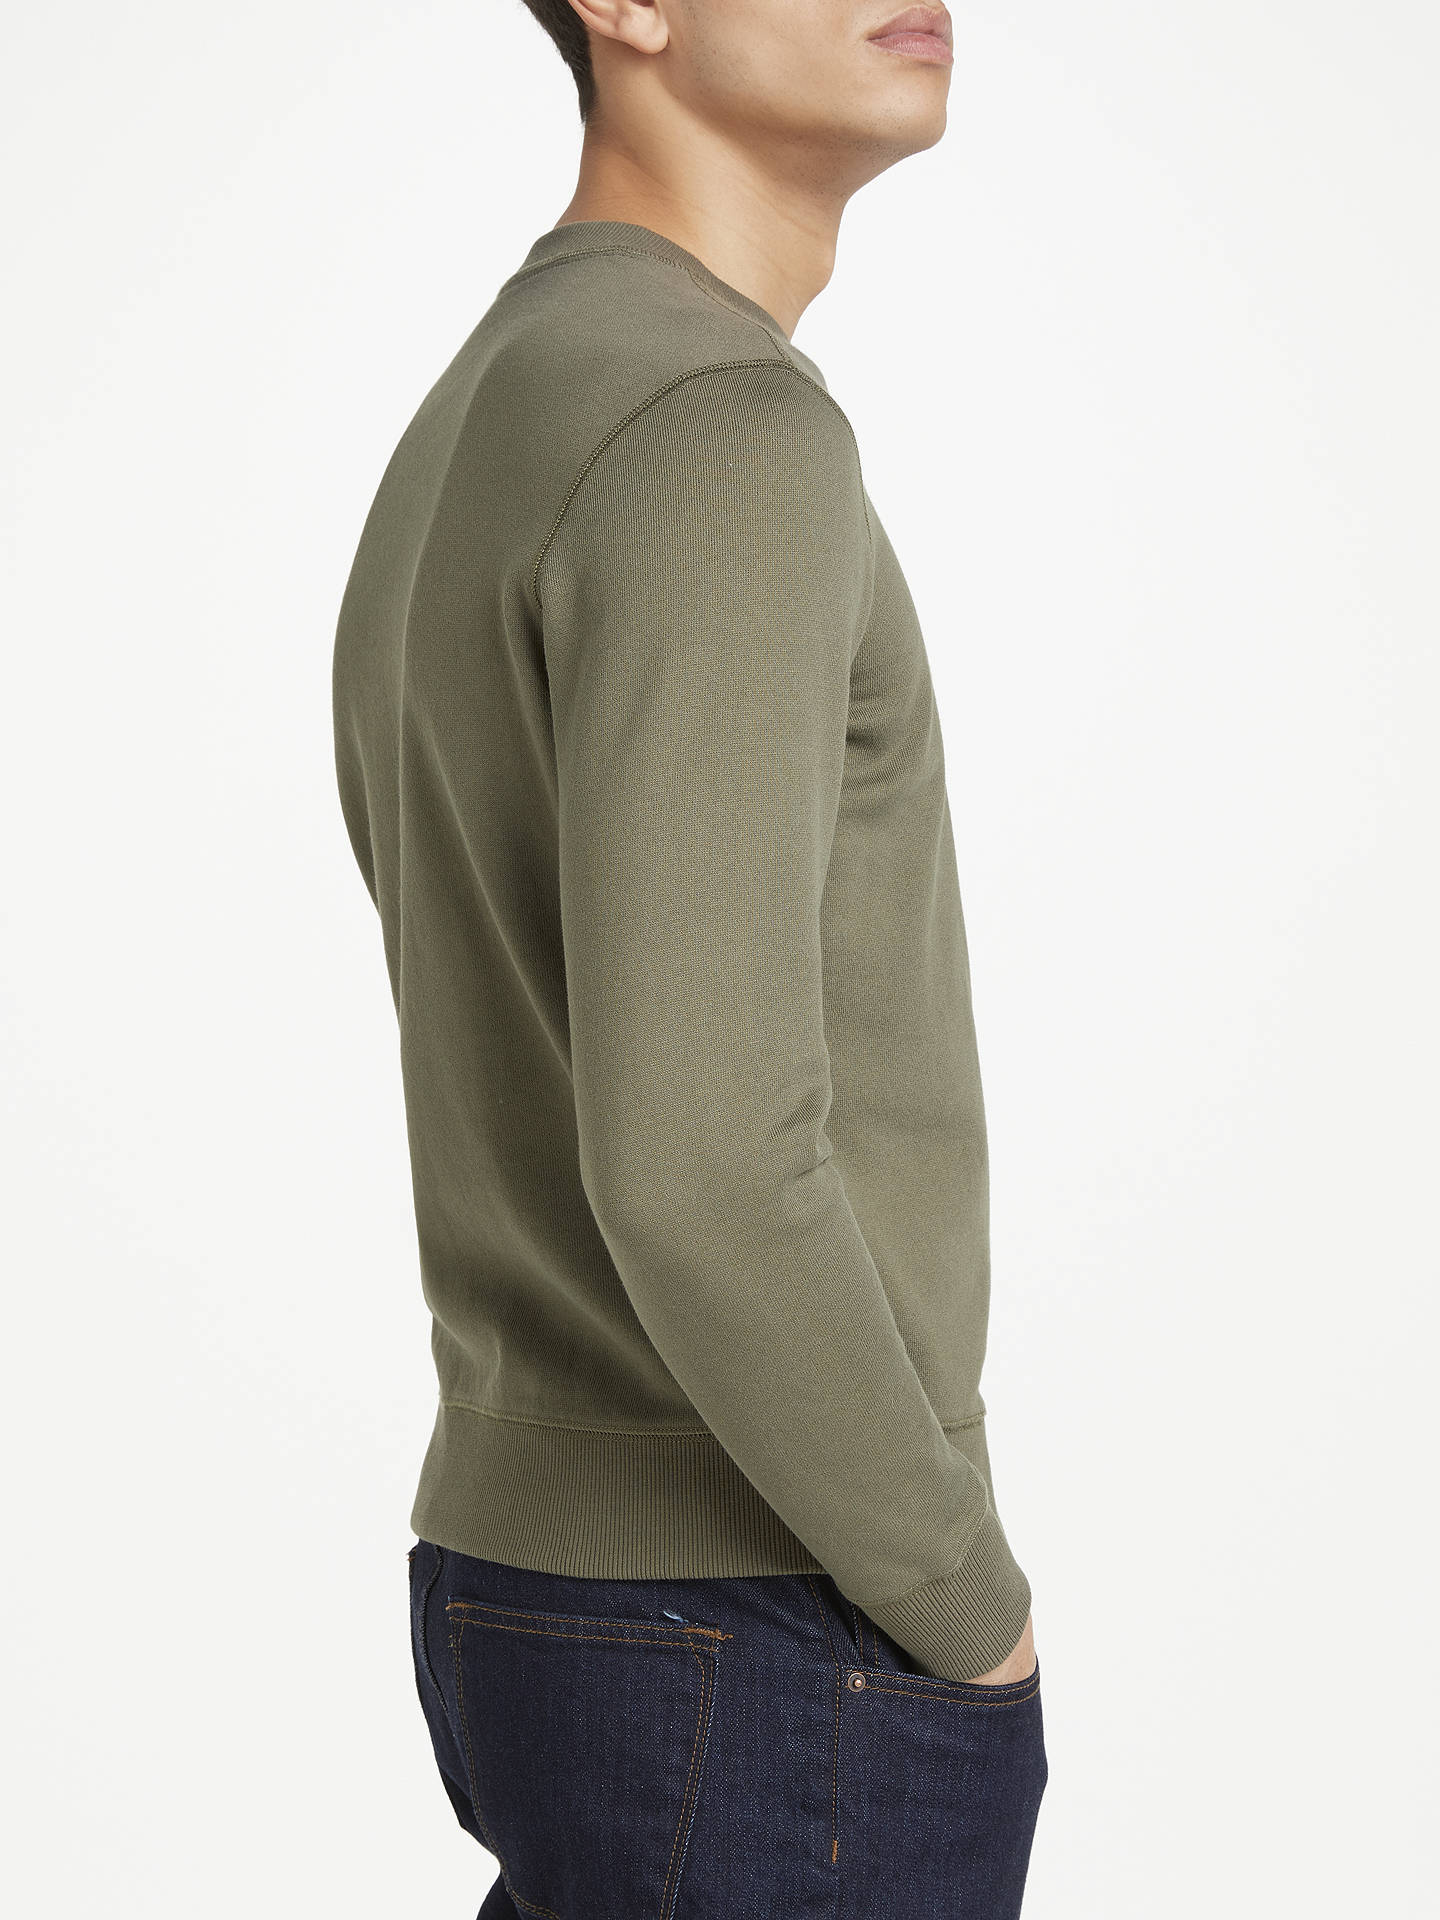 John Lacoste Green SweatshirtArmy Partners Crew Neck At Lewisamp; Live 7bYgfyv6